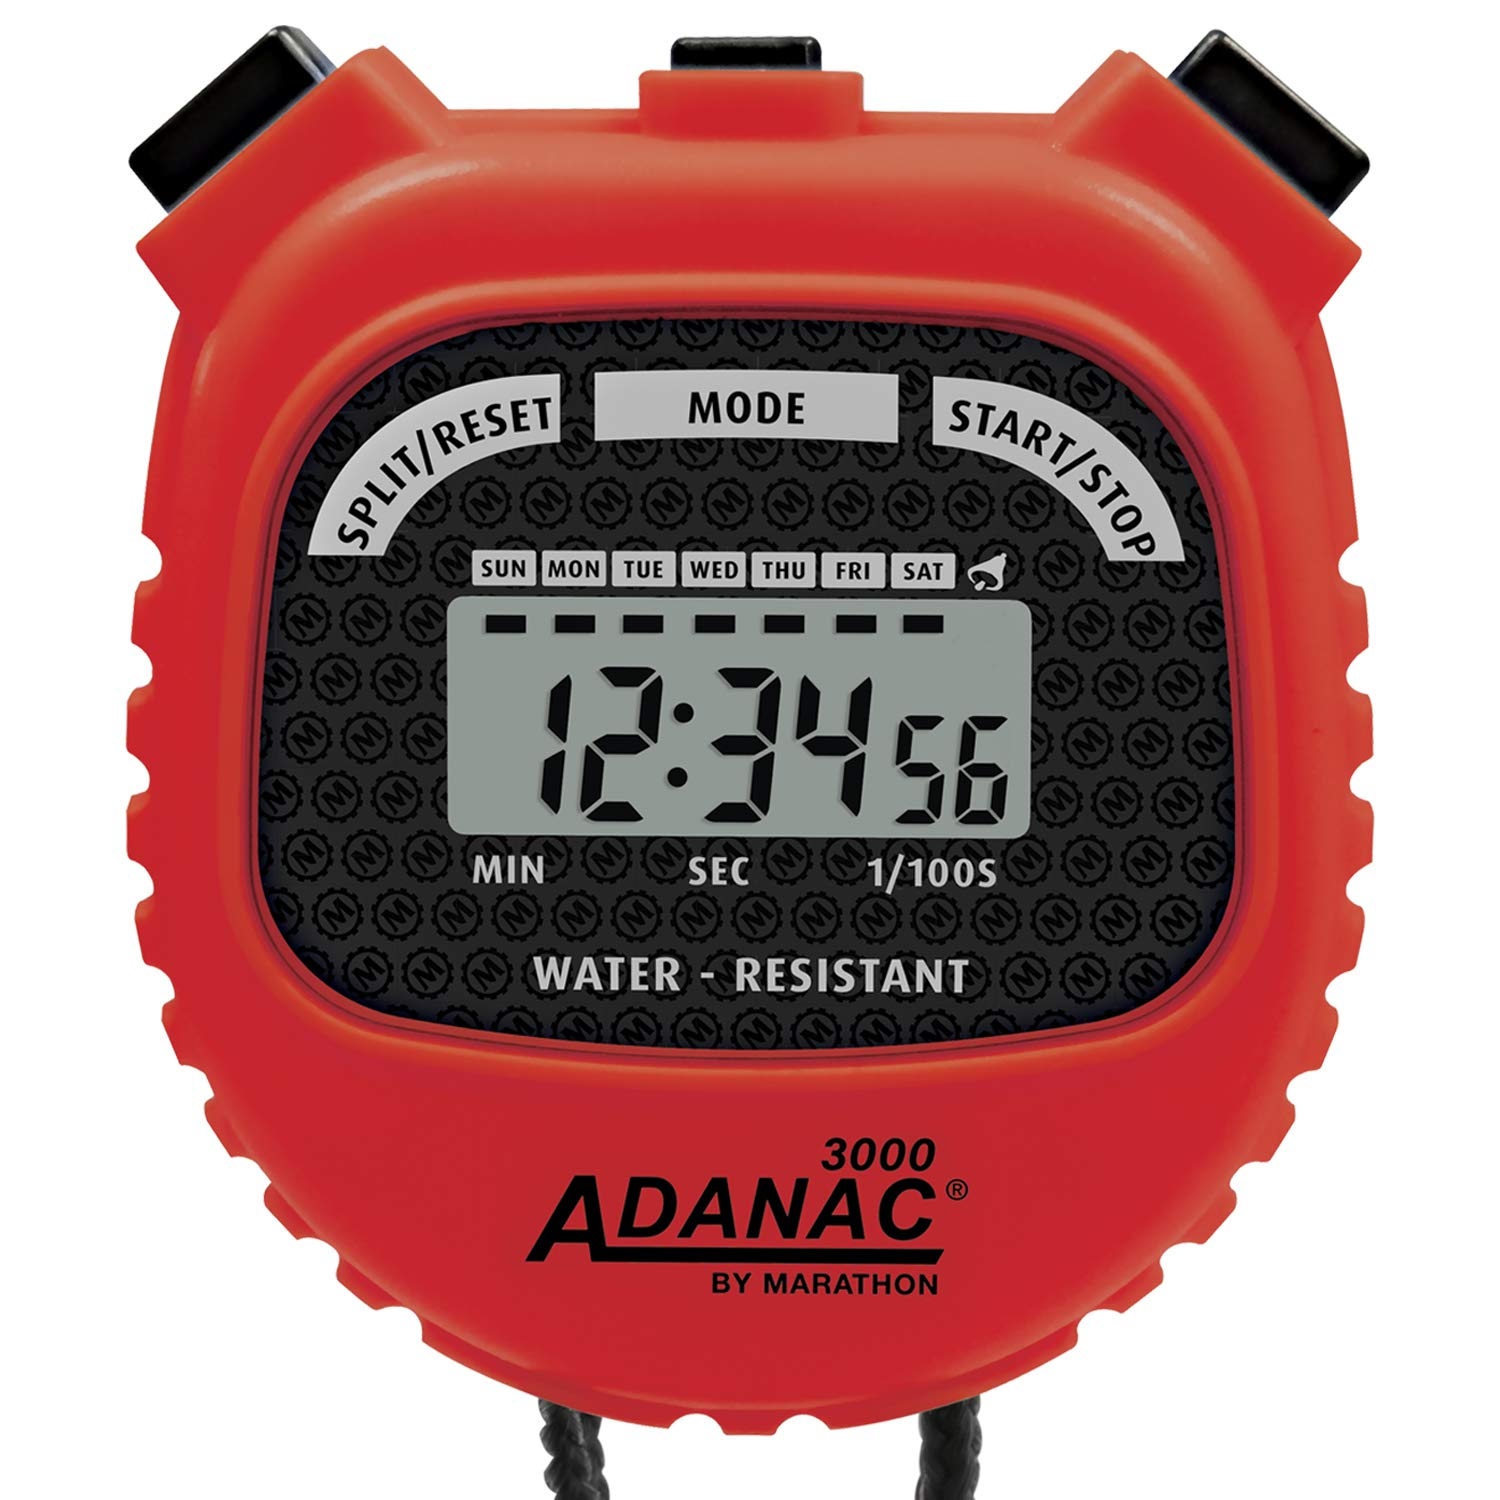 MARATHON Adanac 3000 Digital Sports Stopwatch Timer with Extra Large Display and Buttons, Water Resistant. Color- Red